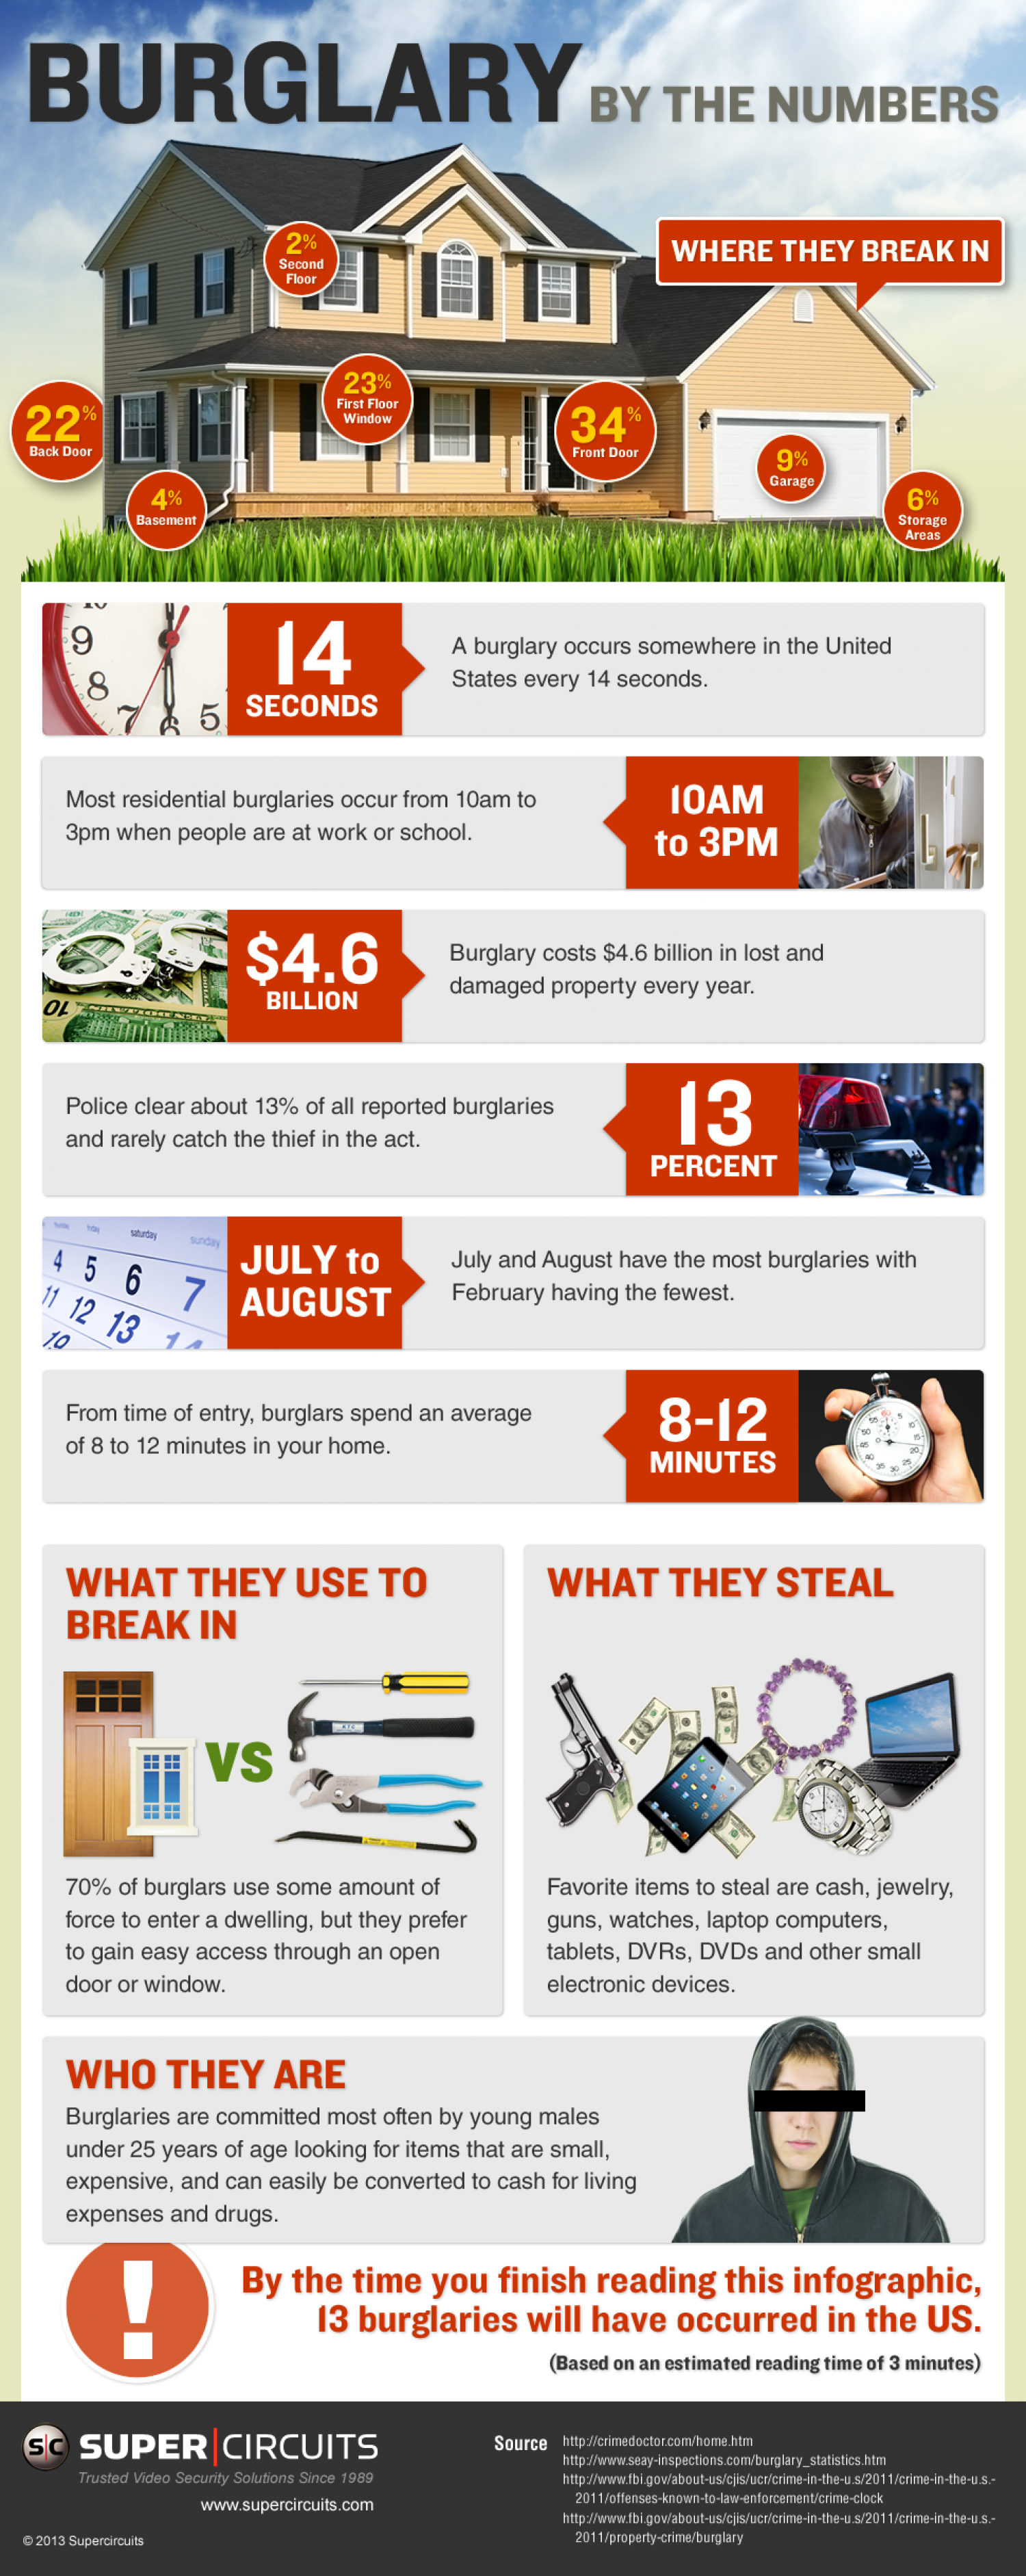 Burglary by the Numbers Infographic